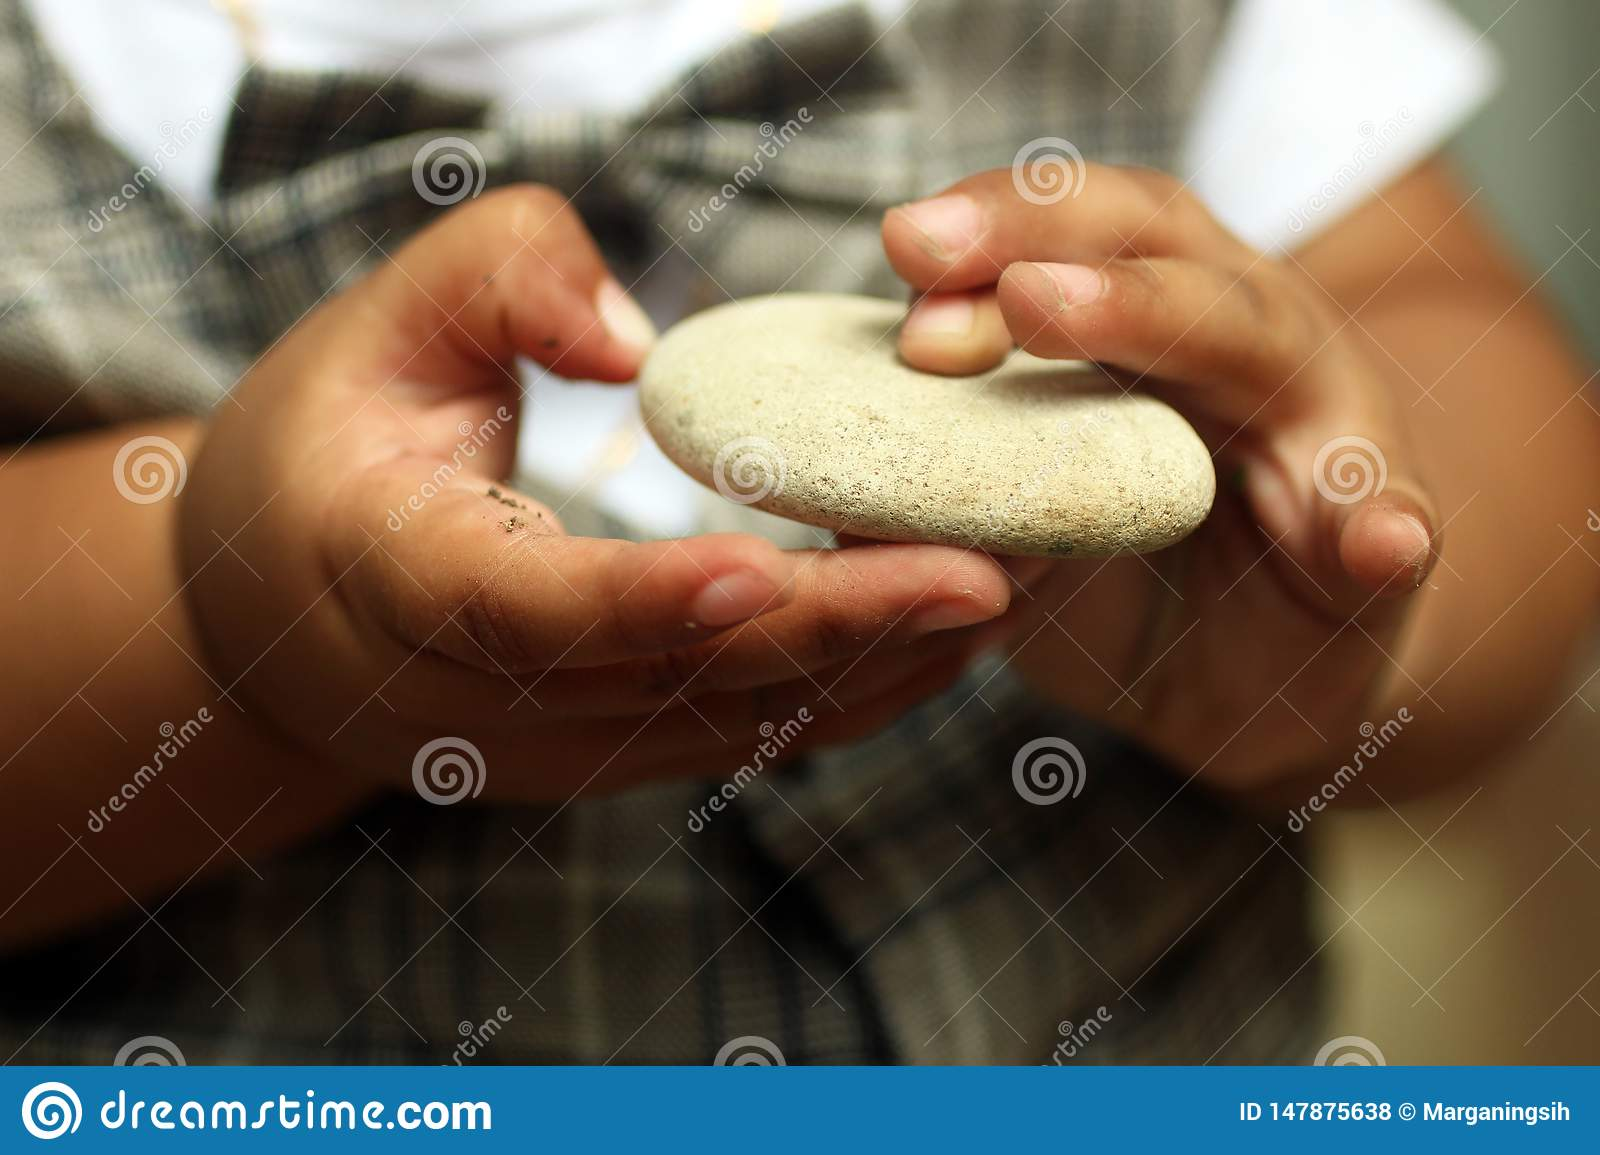 Baby fingers holding white stone. Hands of 1 year old baby